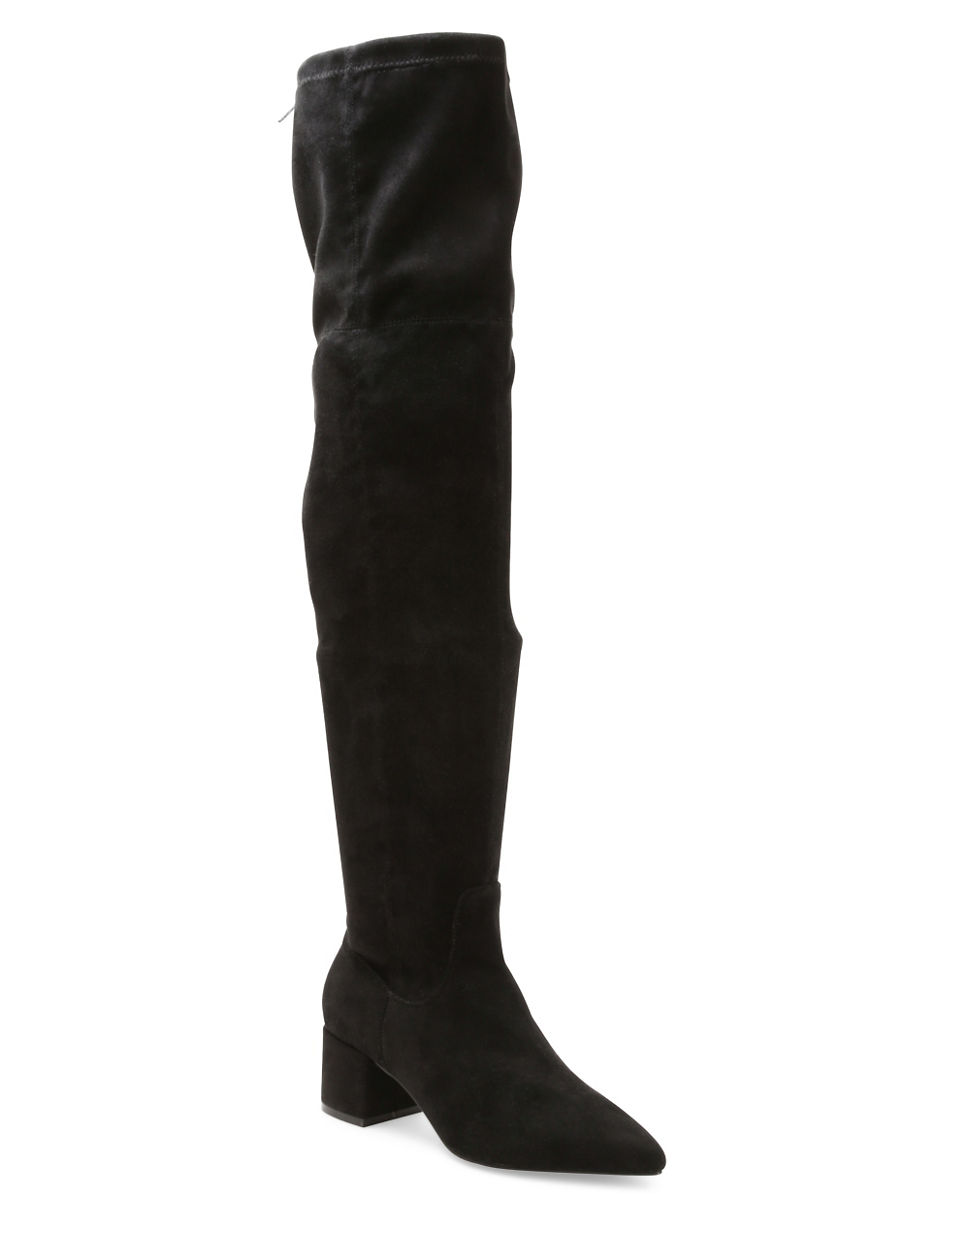 Over The Knee Boots   Boots   Women's Shoes   Shoes   Lord & Taylor